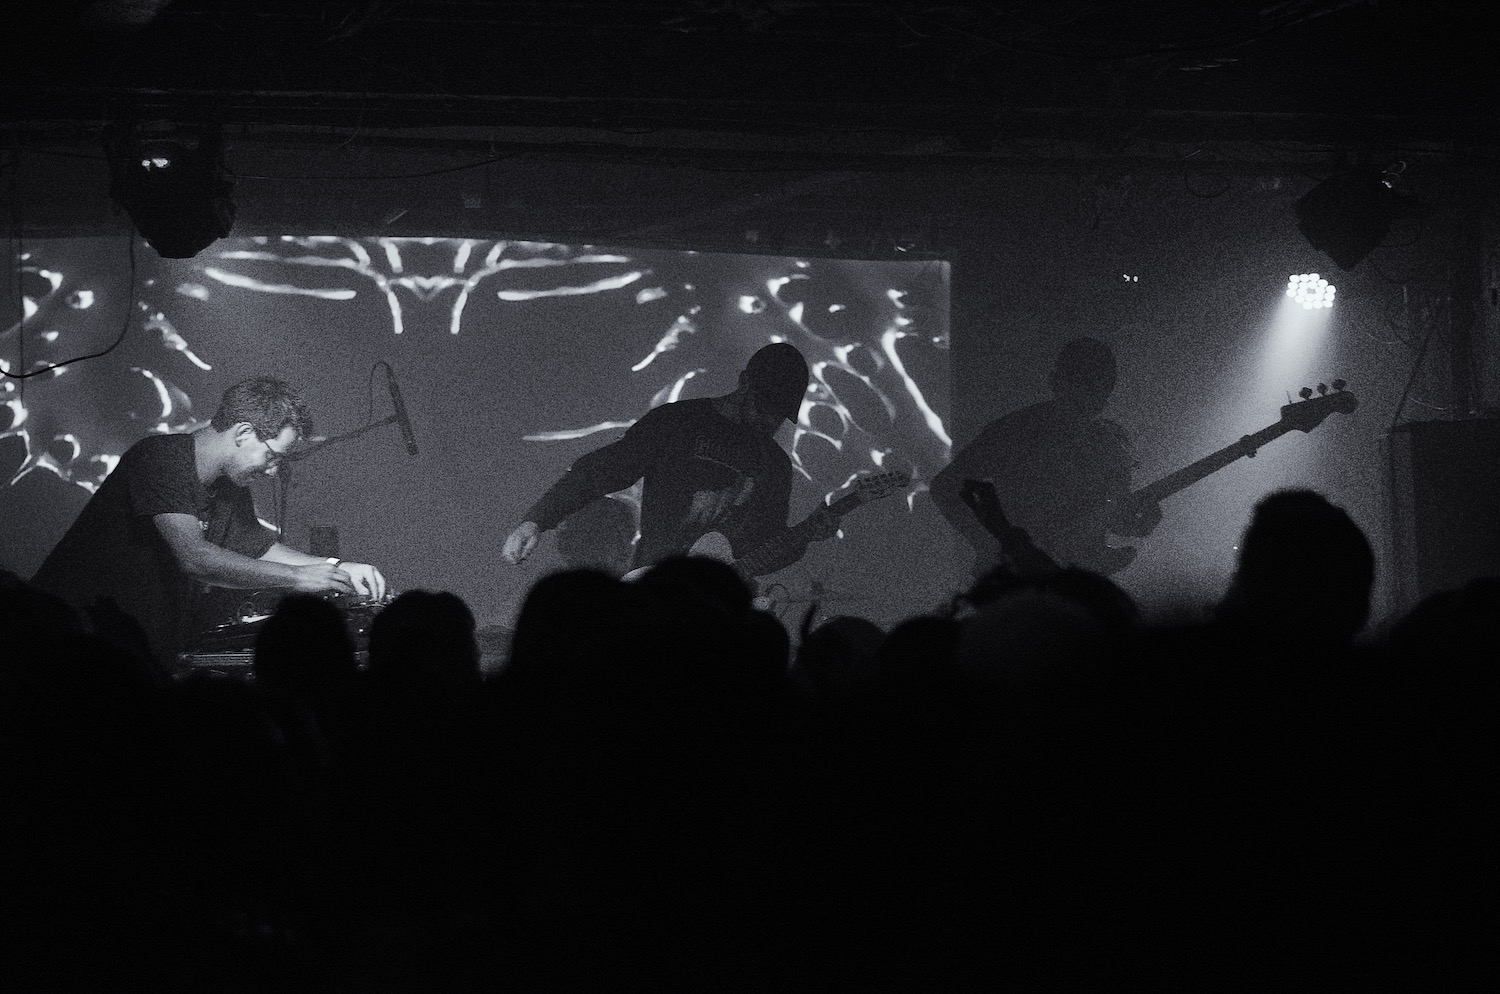 Live Review: Scalping at Electrowerkz, London, 17/10/19